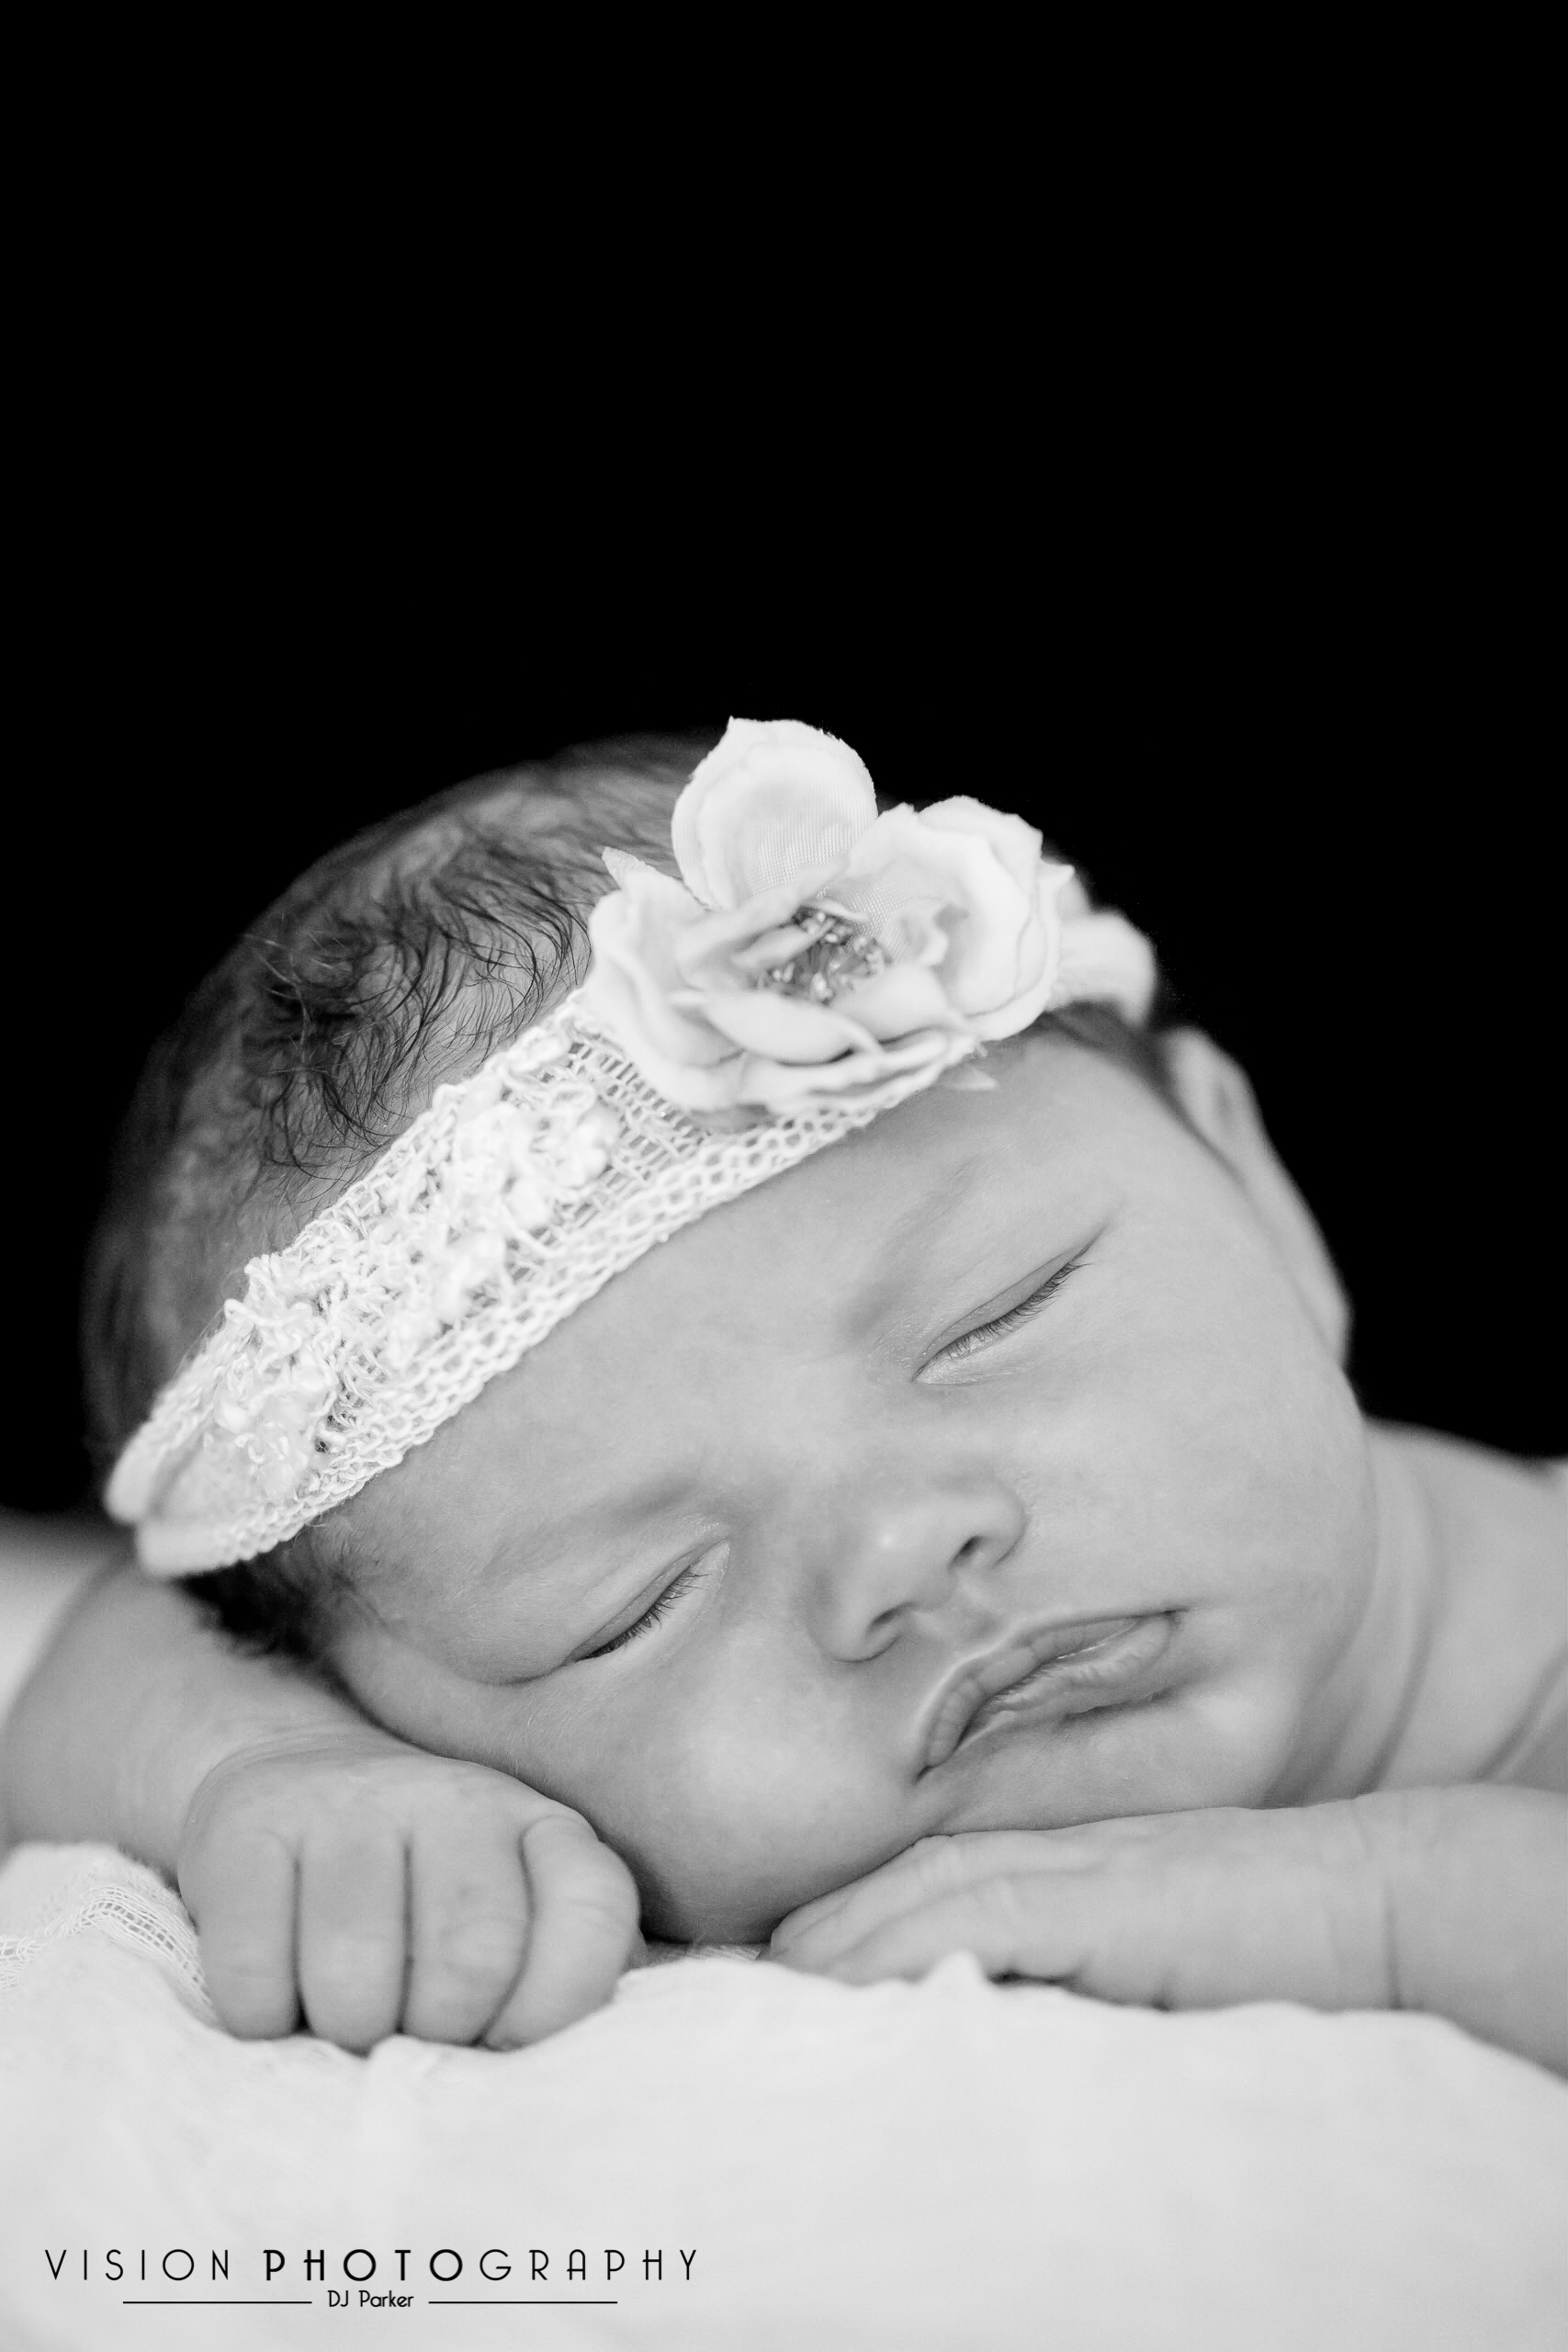 Newborn studio photography black background